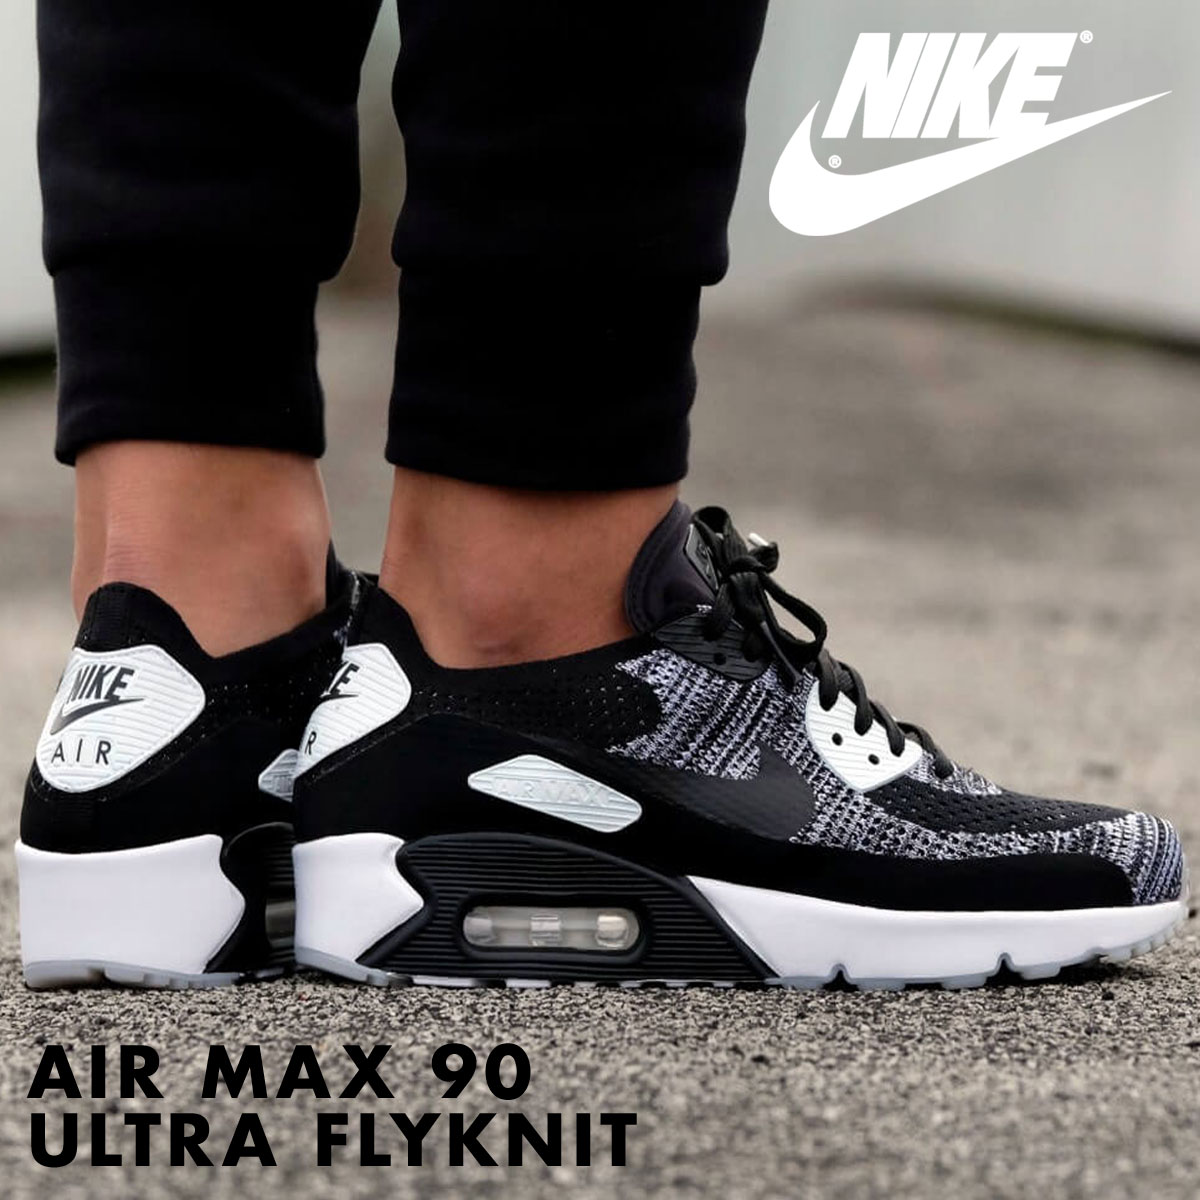 129a5e95548b4 ... Nike NIKE Air Max 90 ultra fly knit sneakers AIR MAX 90 ULTRA 2.0  FLYKNIT 875,943 ...